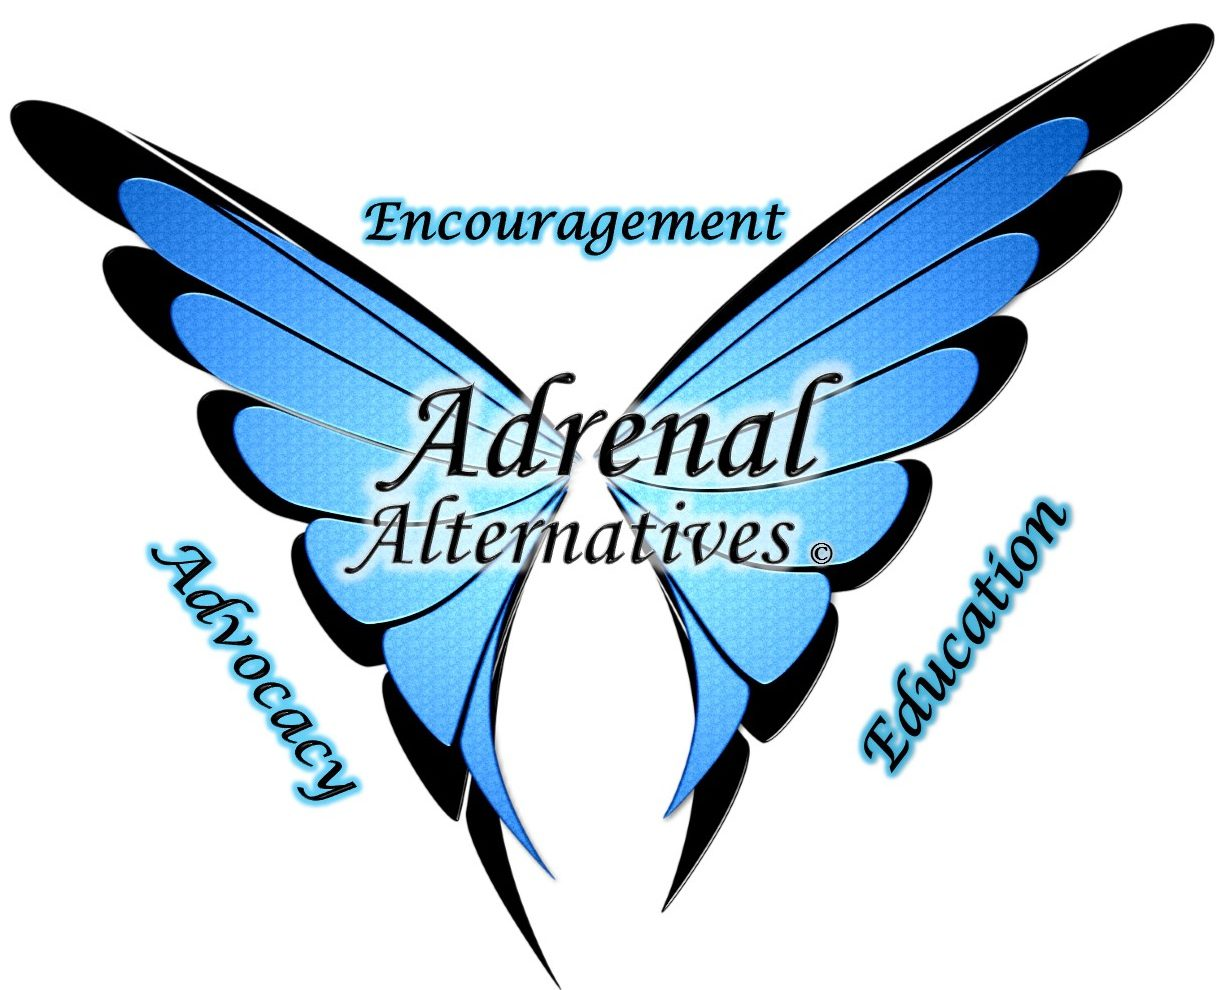 Adrenal Alternatives Foundation